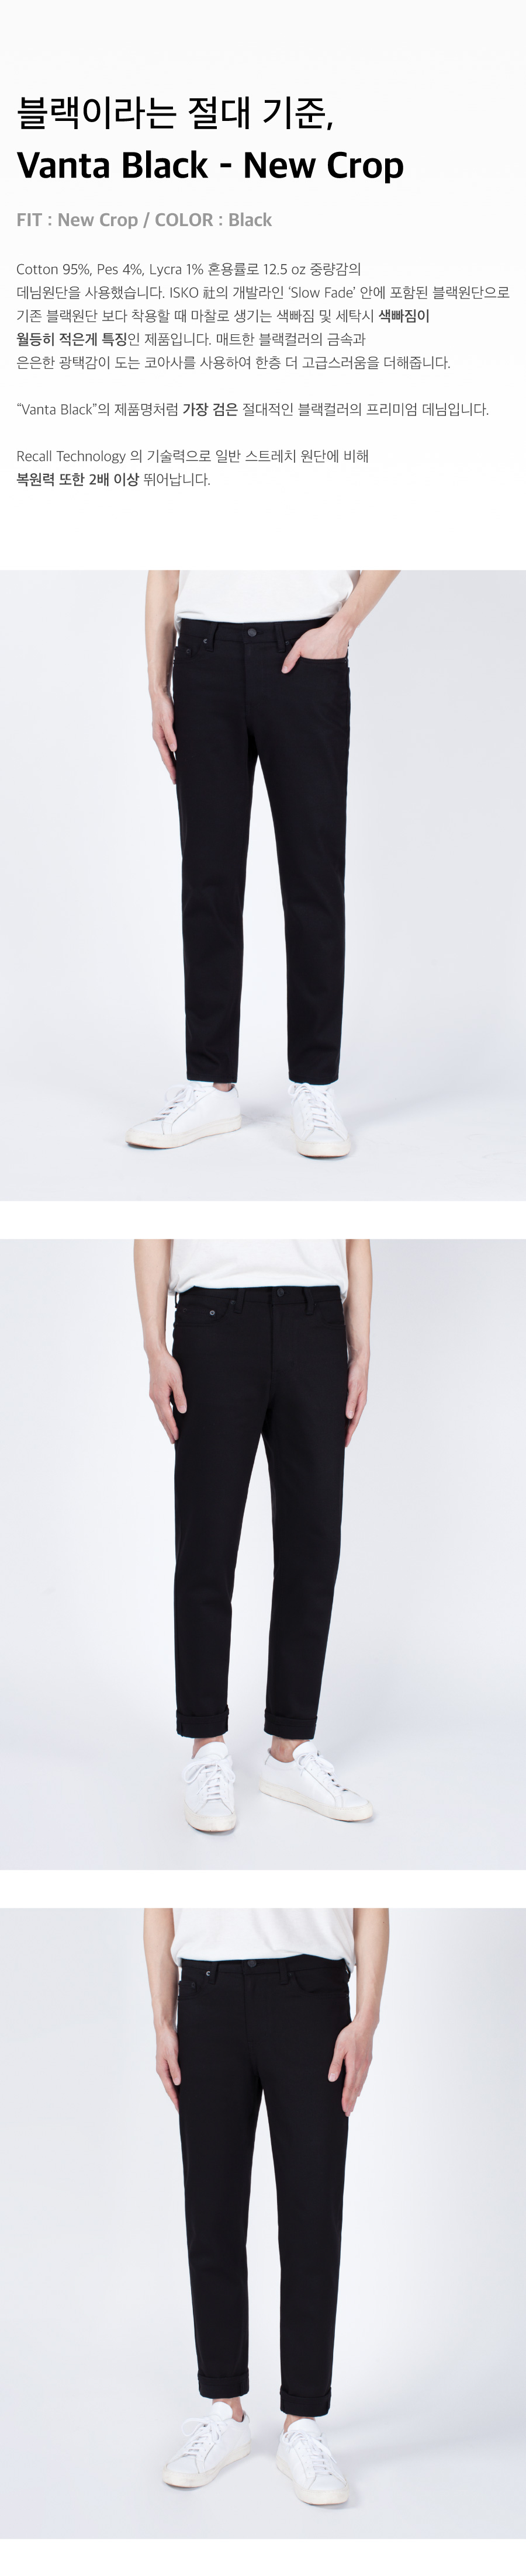 피스워커(PIECE WORKER) Vanta Black / NewCrop